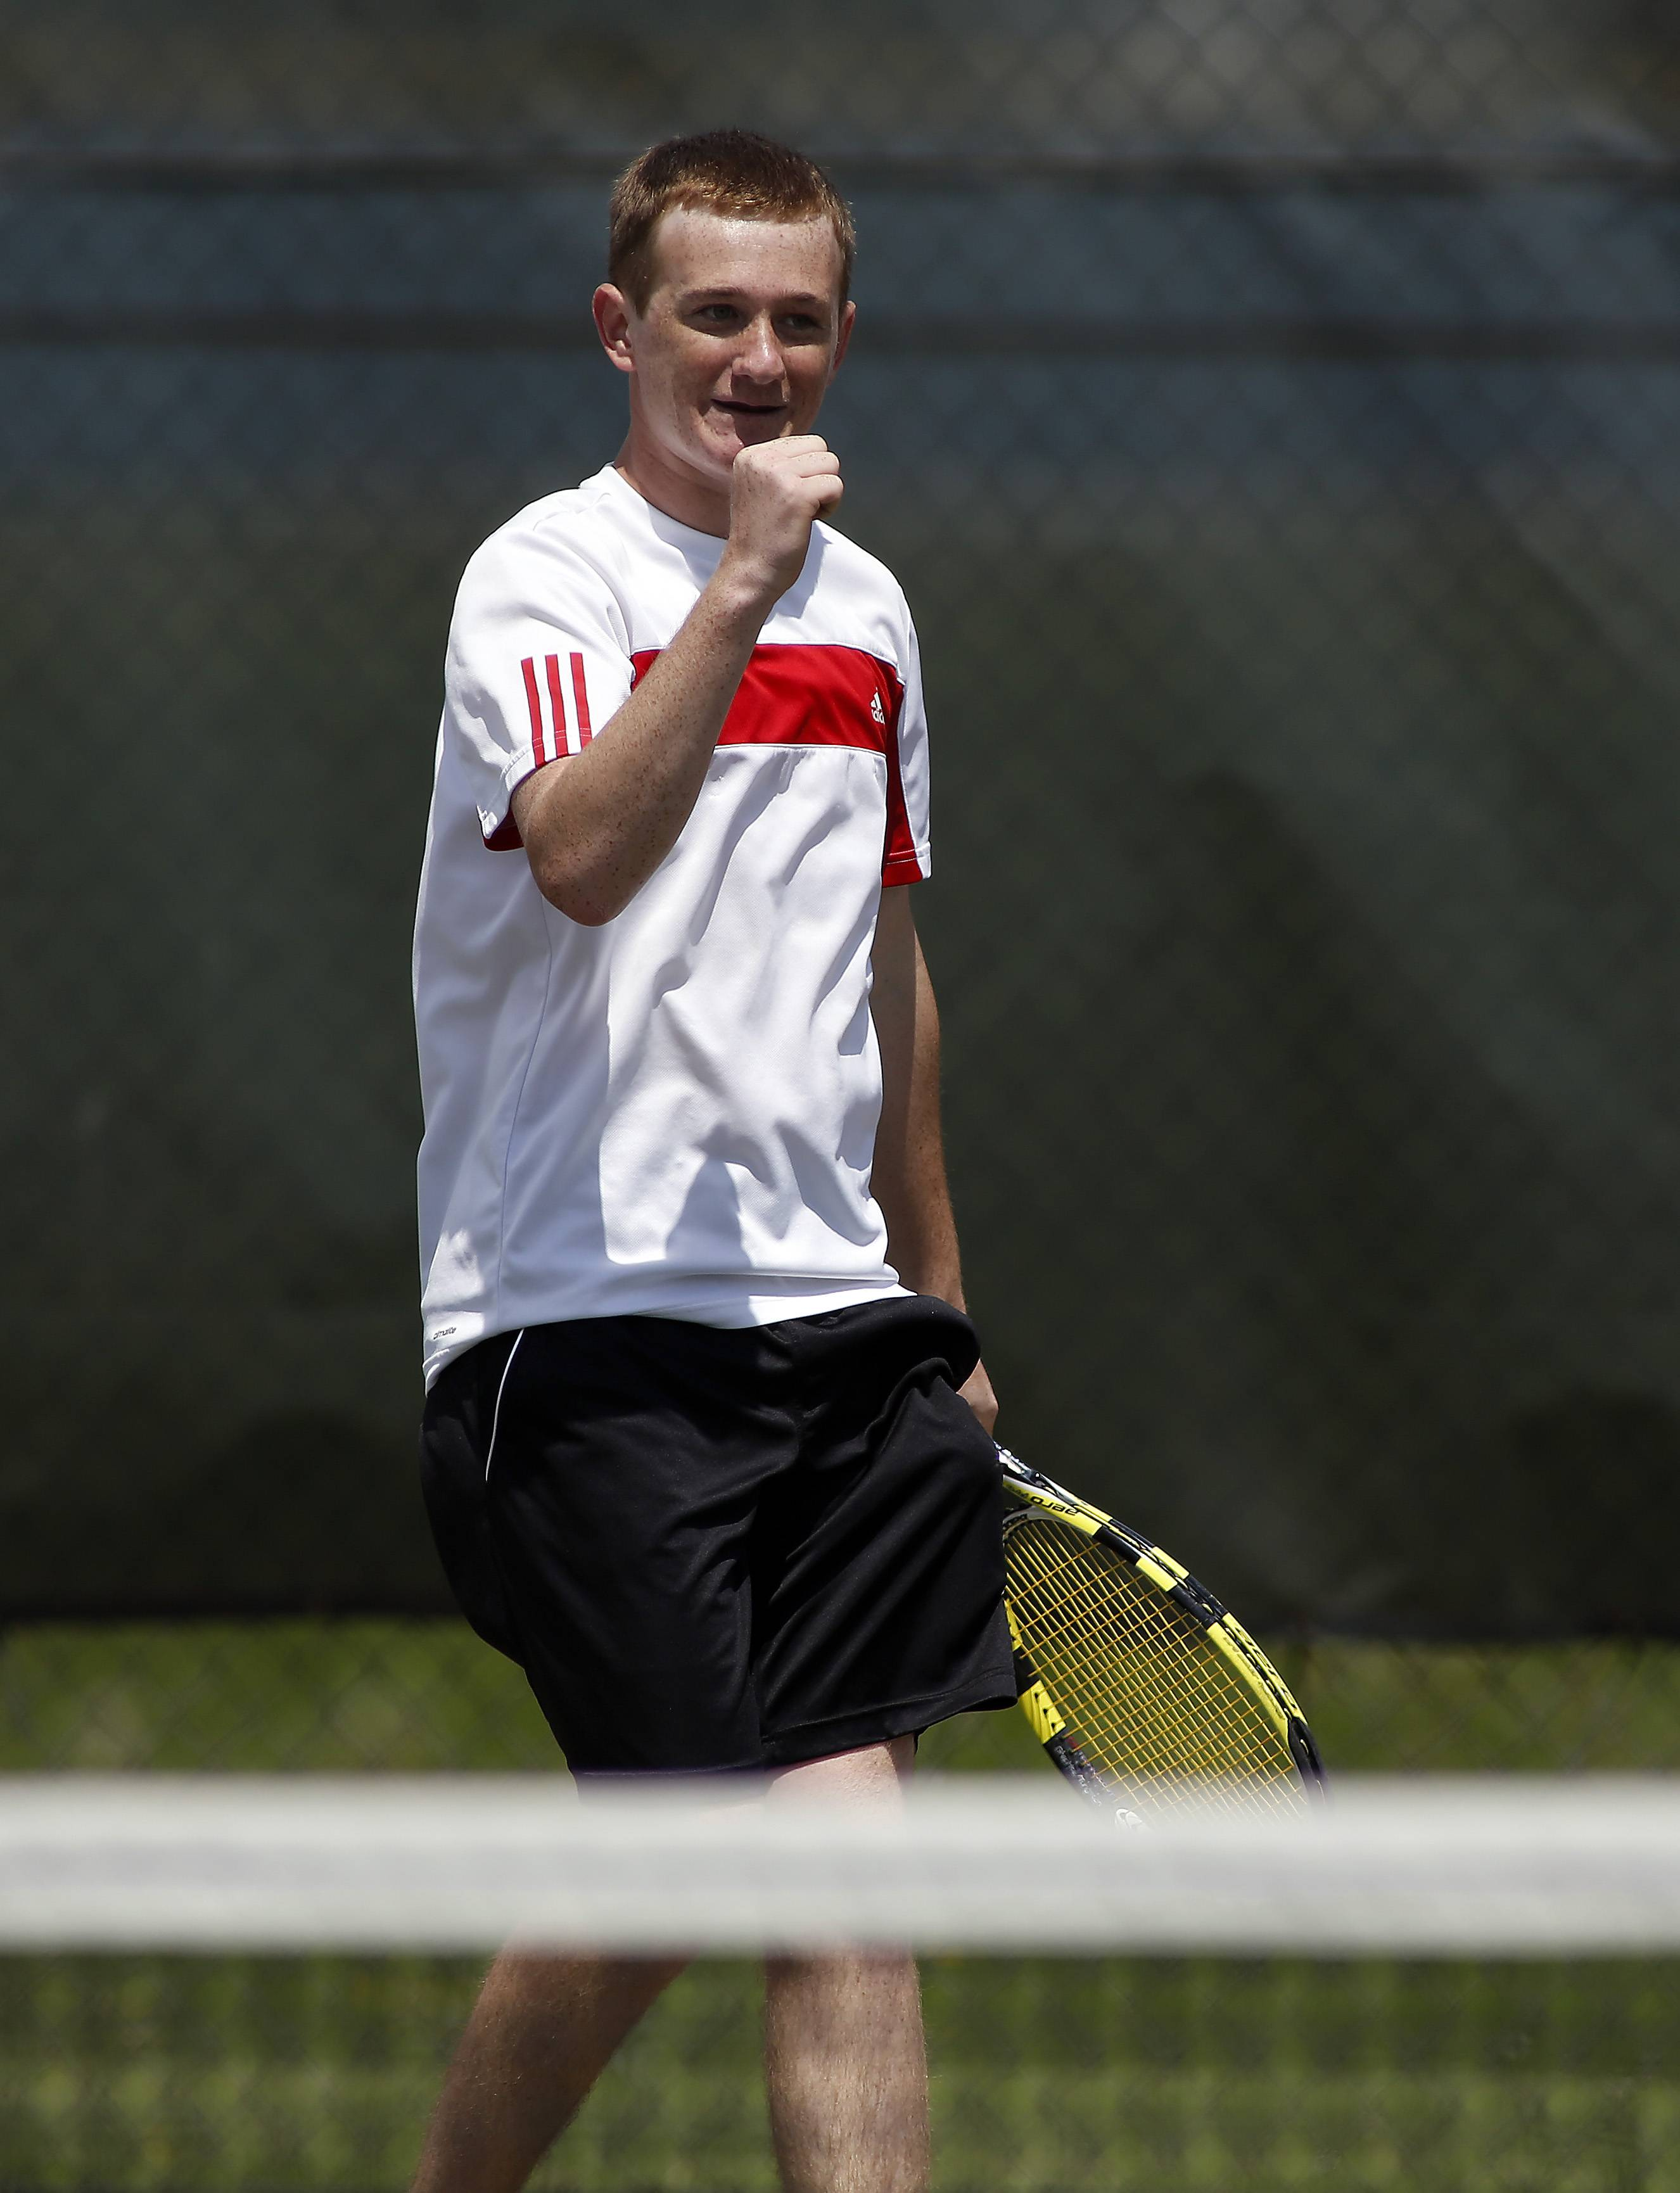 Batavia's Adam Maris reacts after winning a point against St. Charles North during the Upstate Eight Conference boys tennis tournament at Geneva High School Saturday.